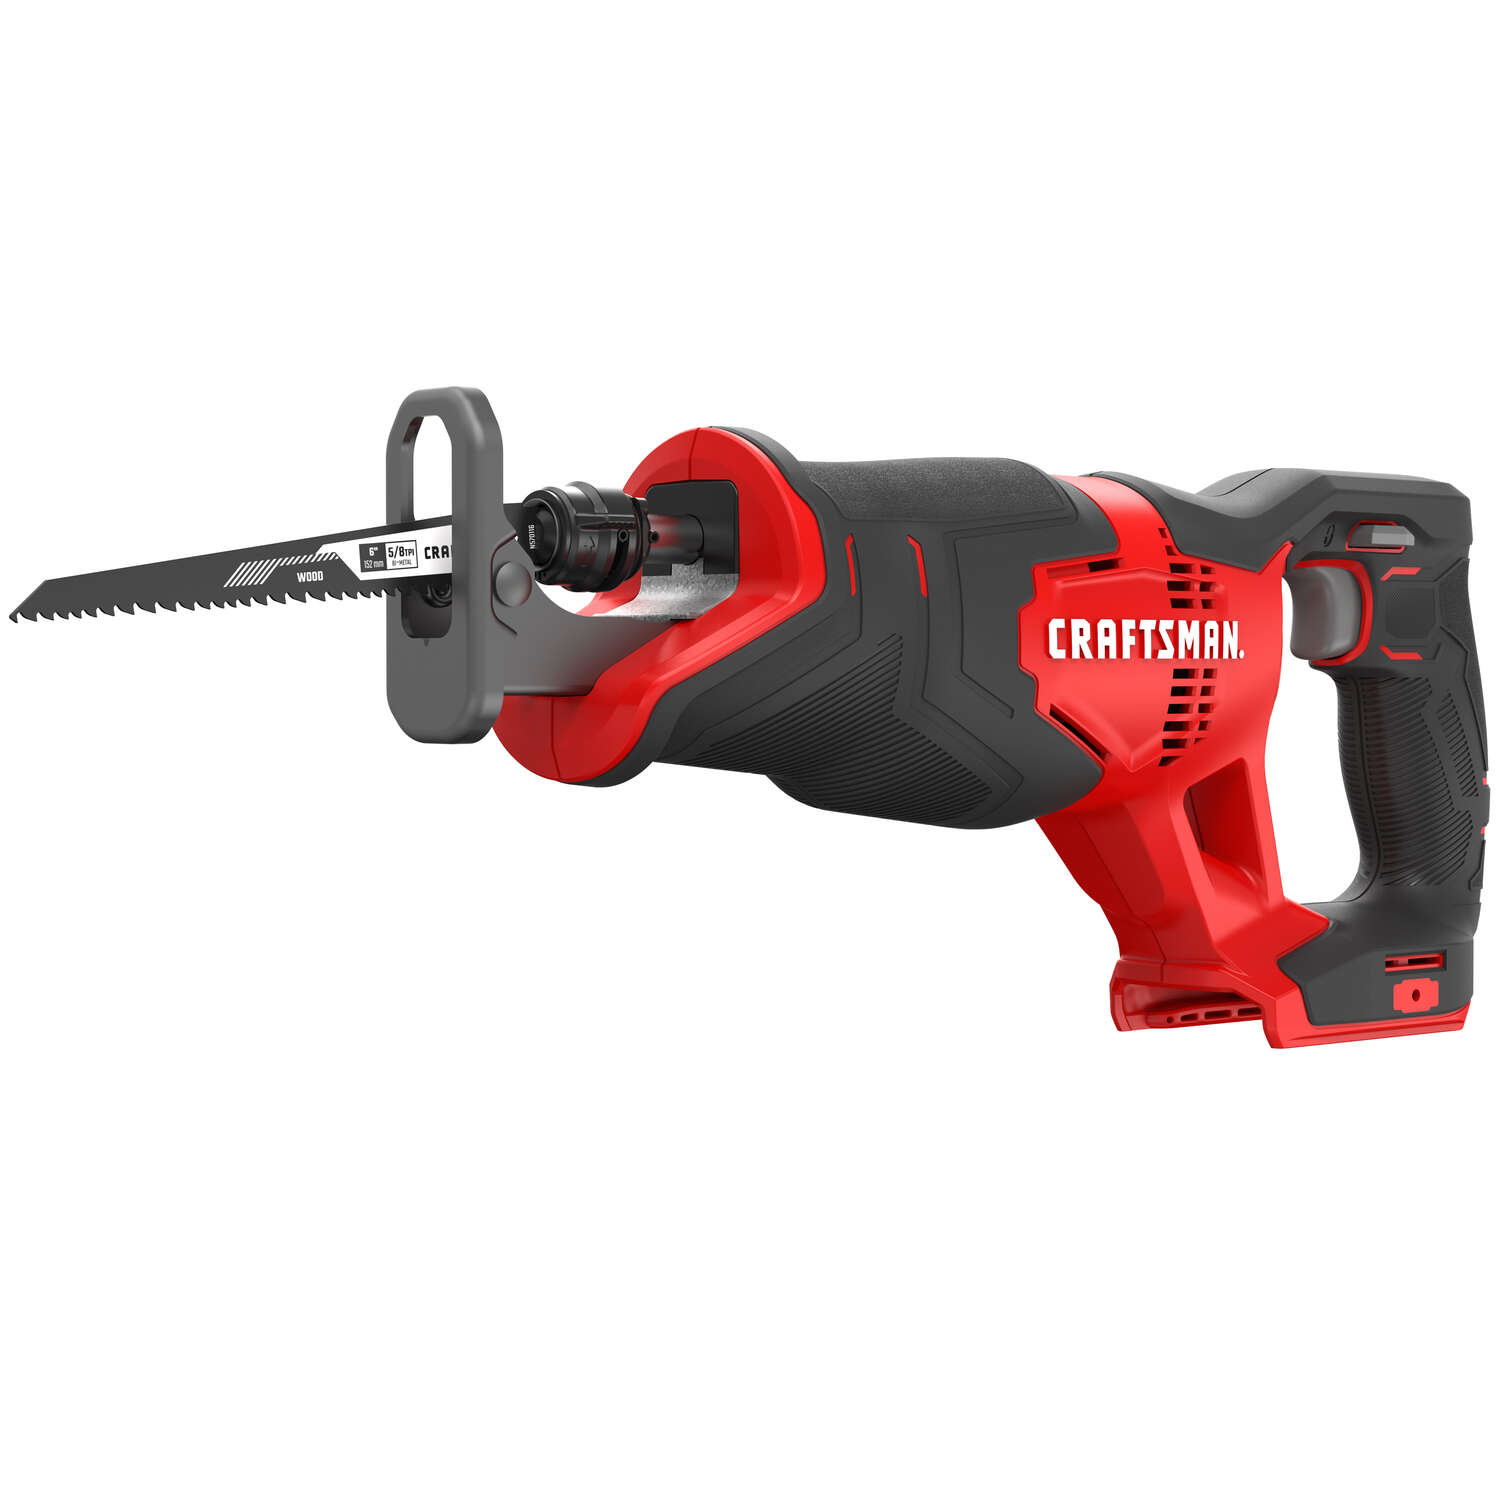 Craftsman 20V MAX 20 volt Cordless Brushed Reciprocating Saw Tool Only